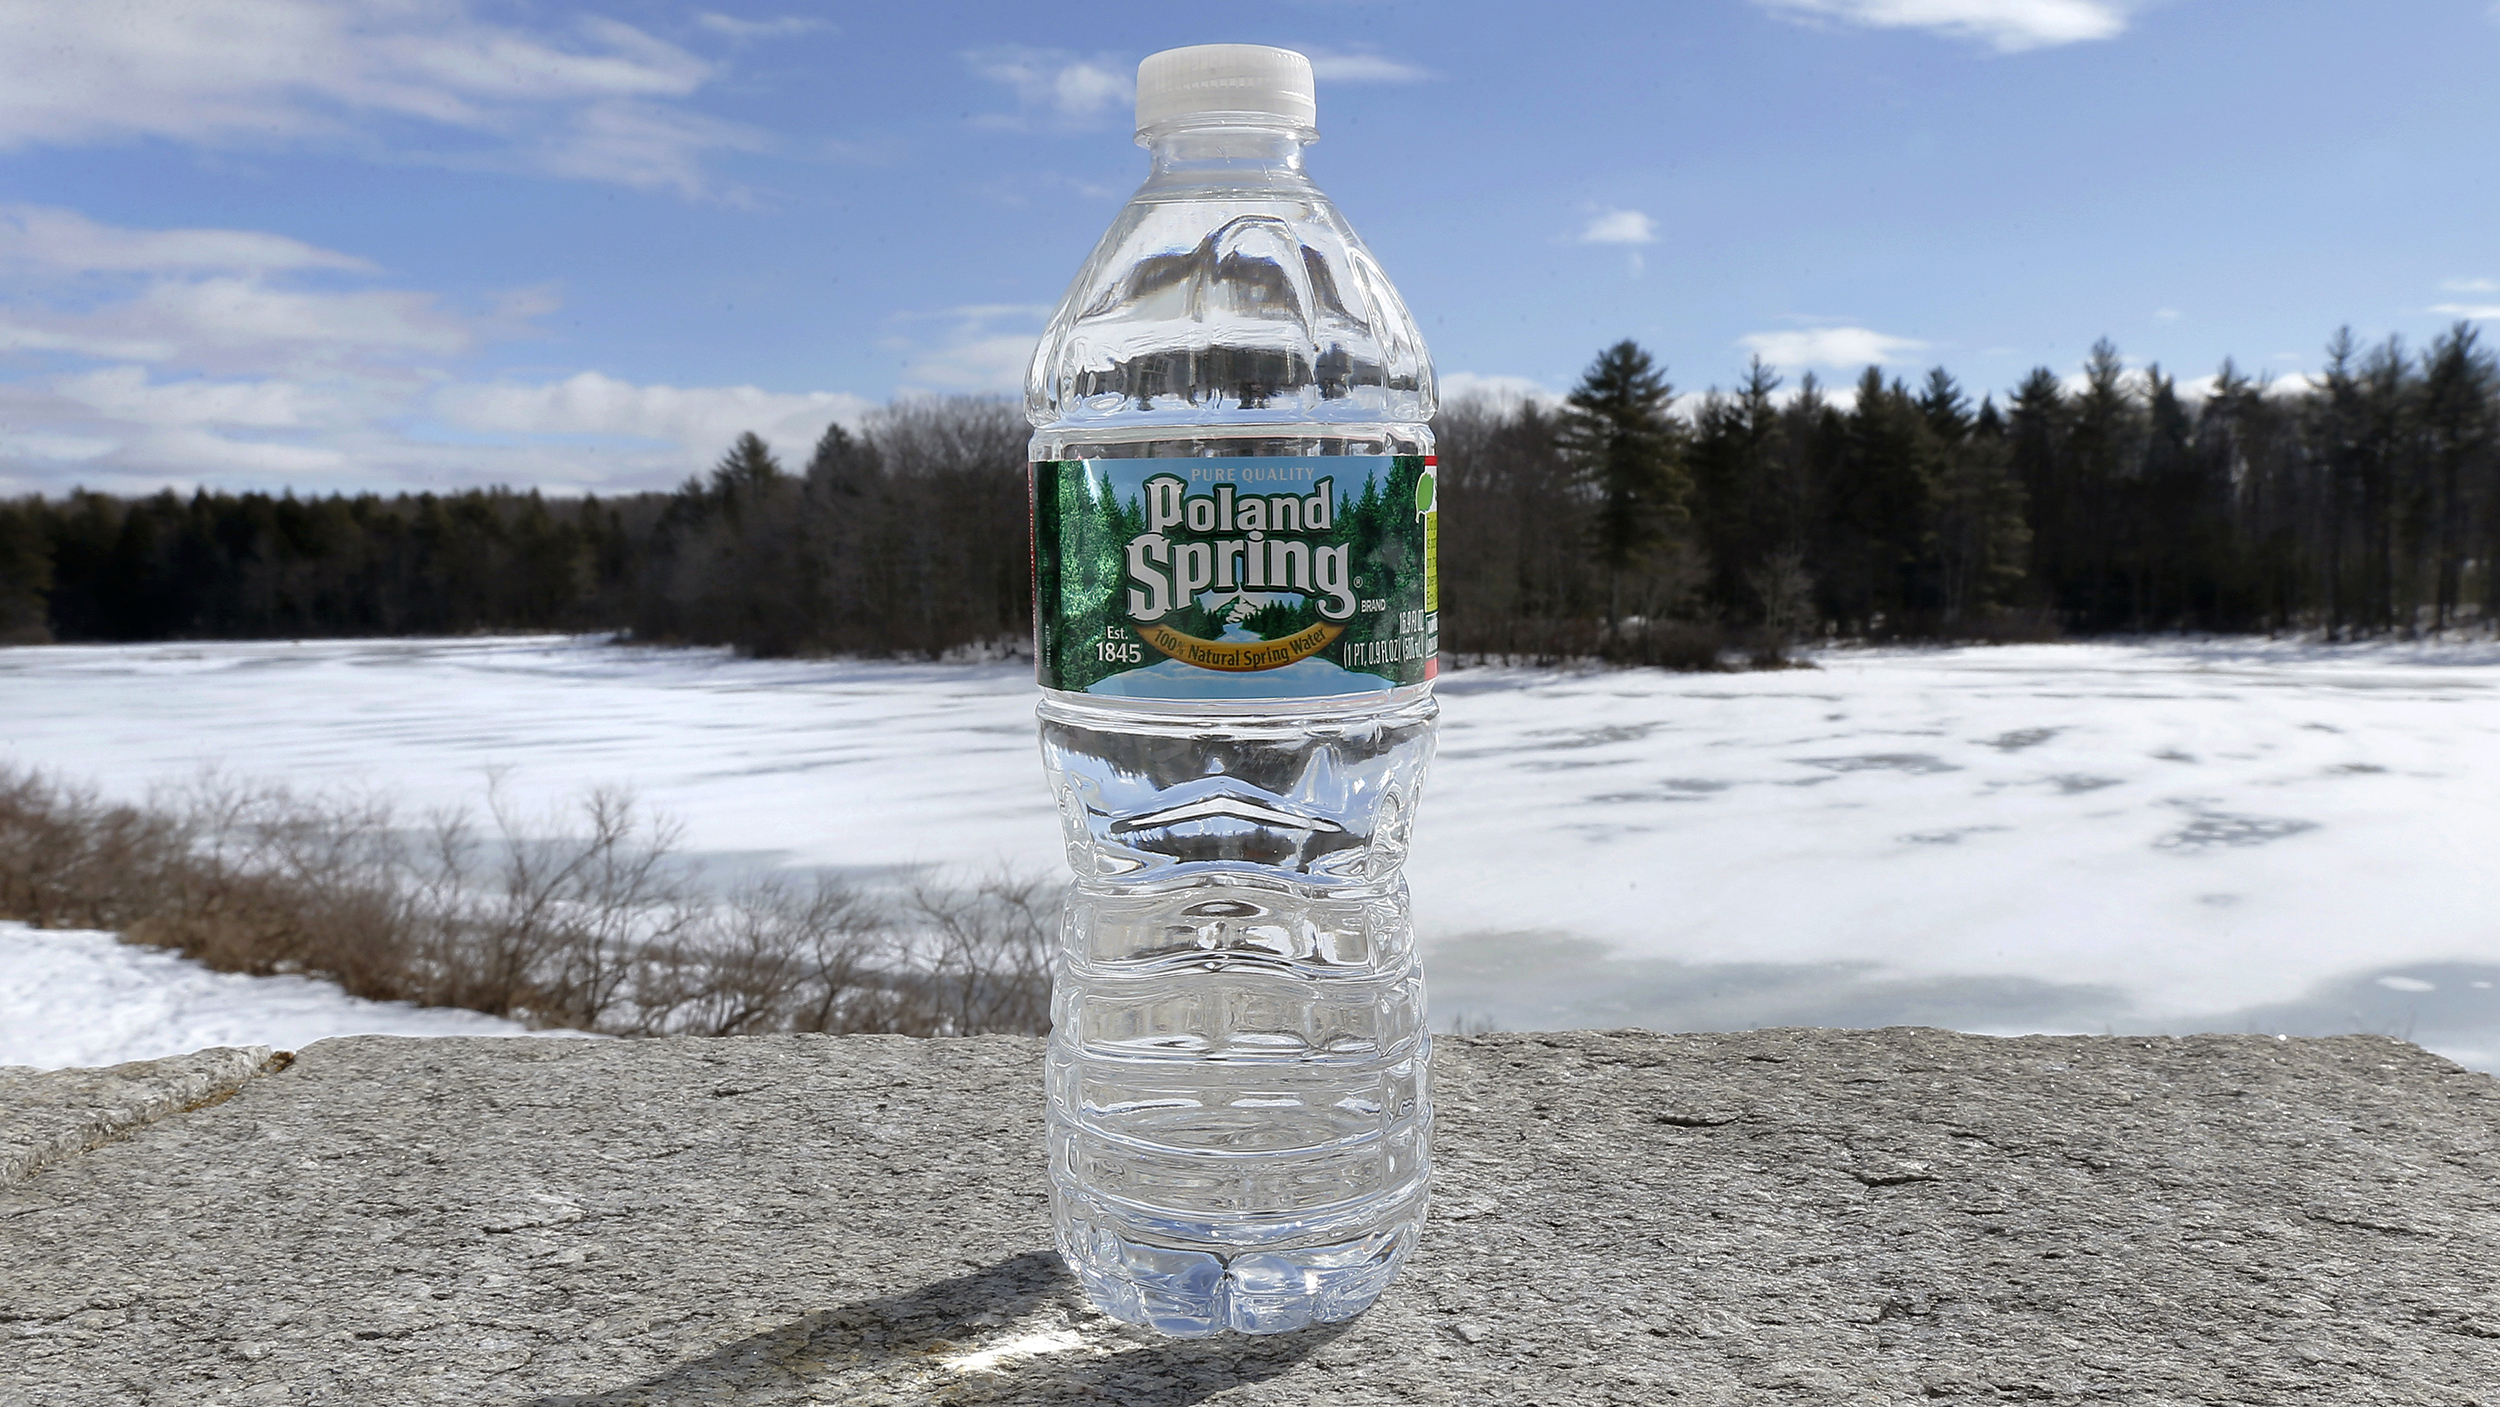 Lawsuit alleges Poland Spring water is a big fraud